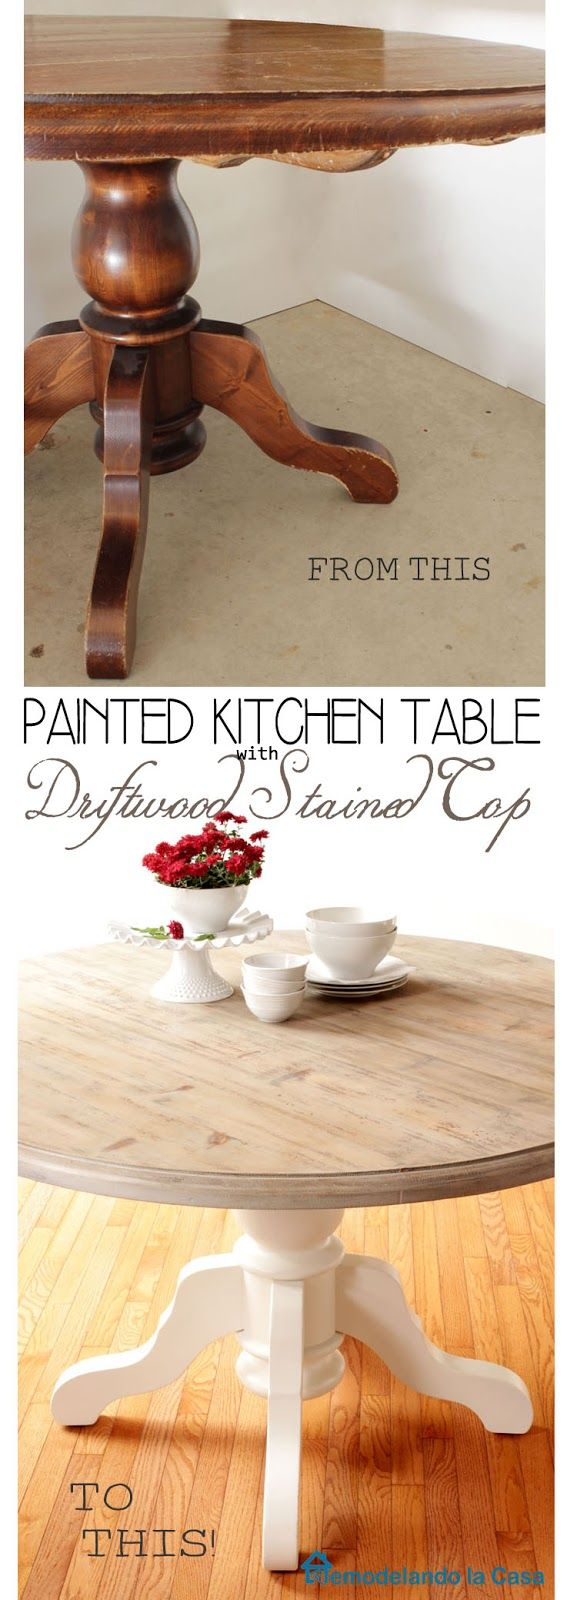 best refinish or renew images on pinterest painted furniture